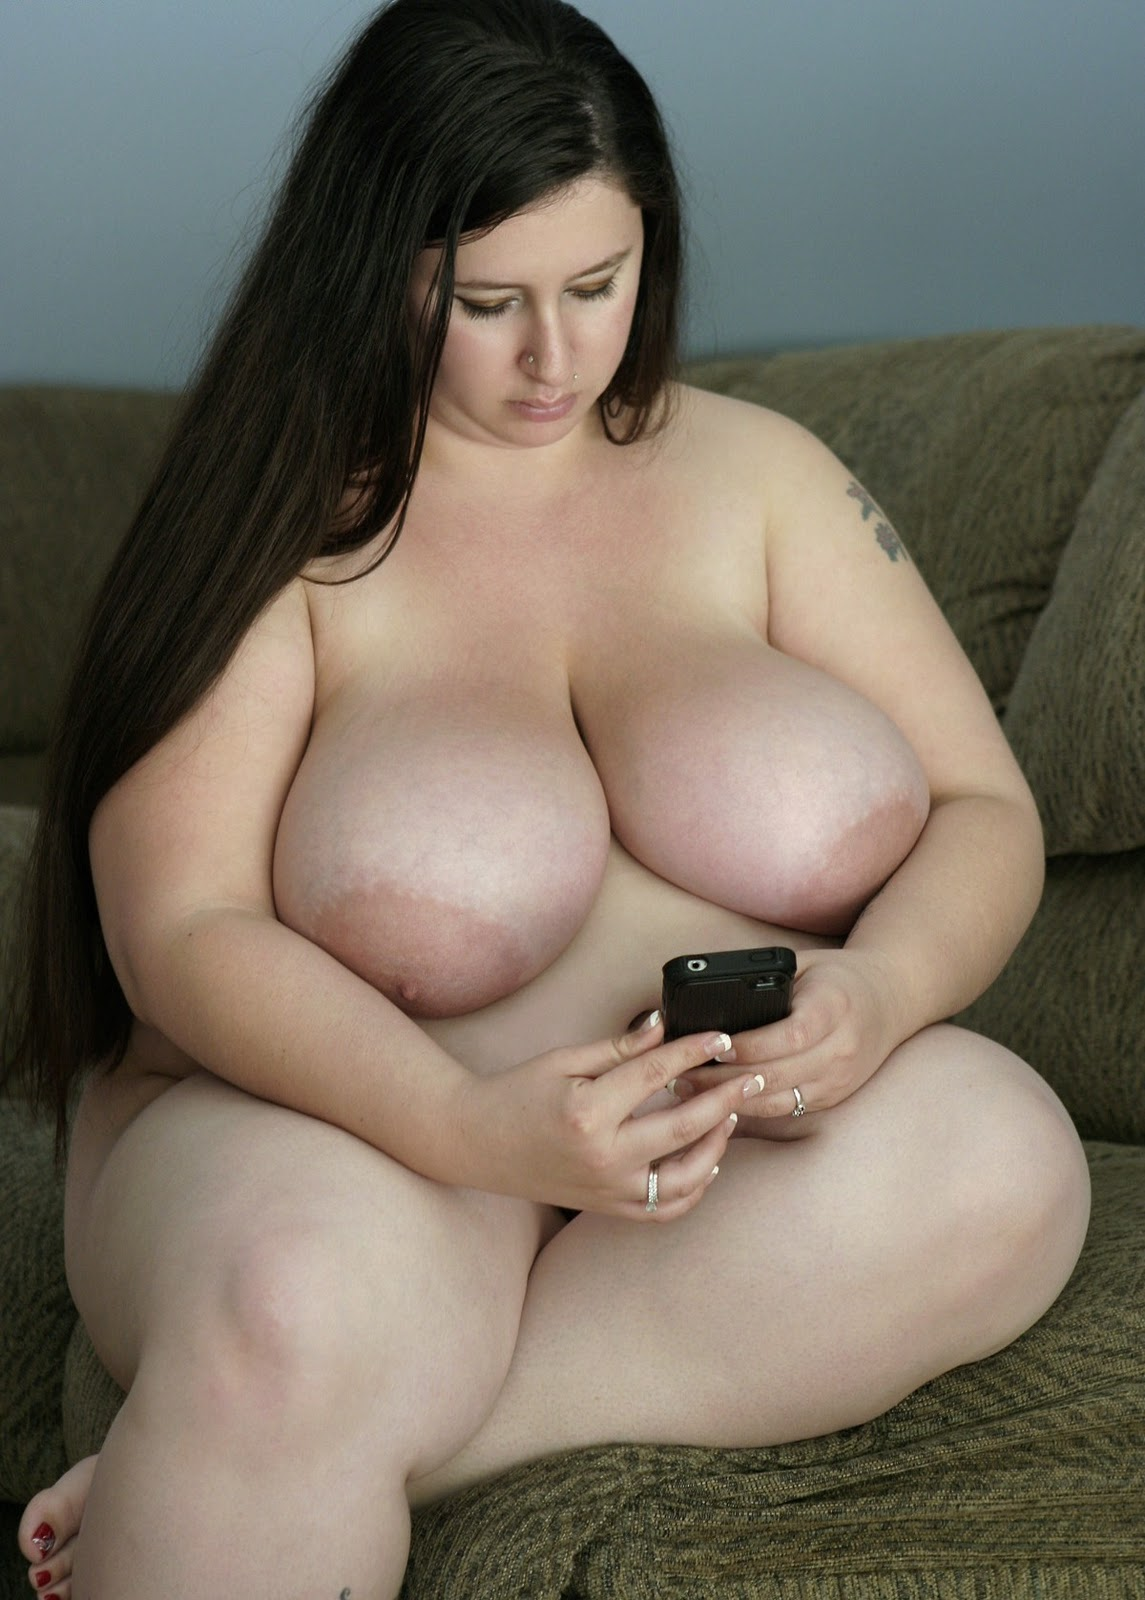 Thick sexy nude girl tumblr speak